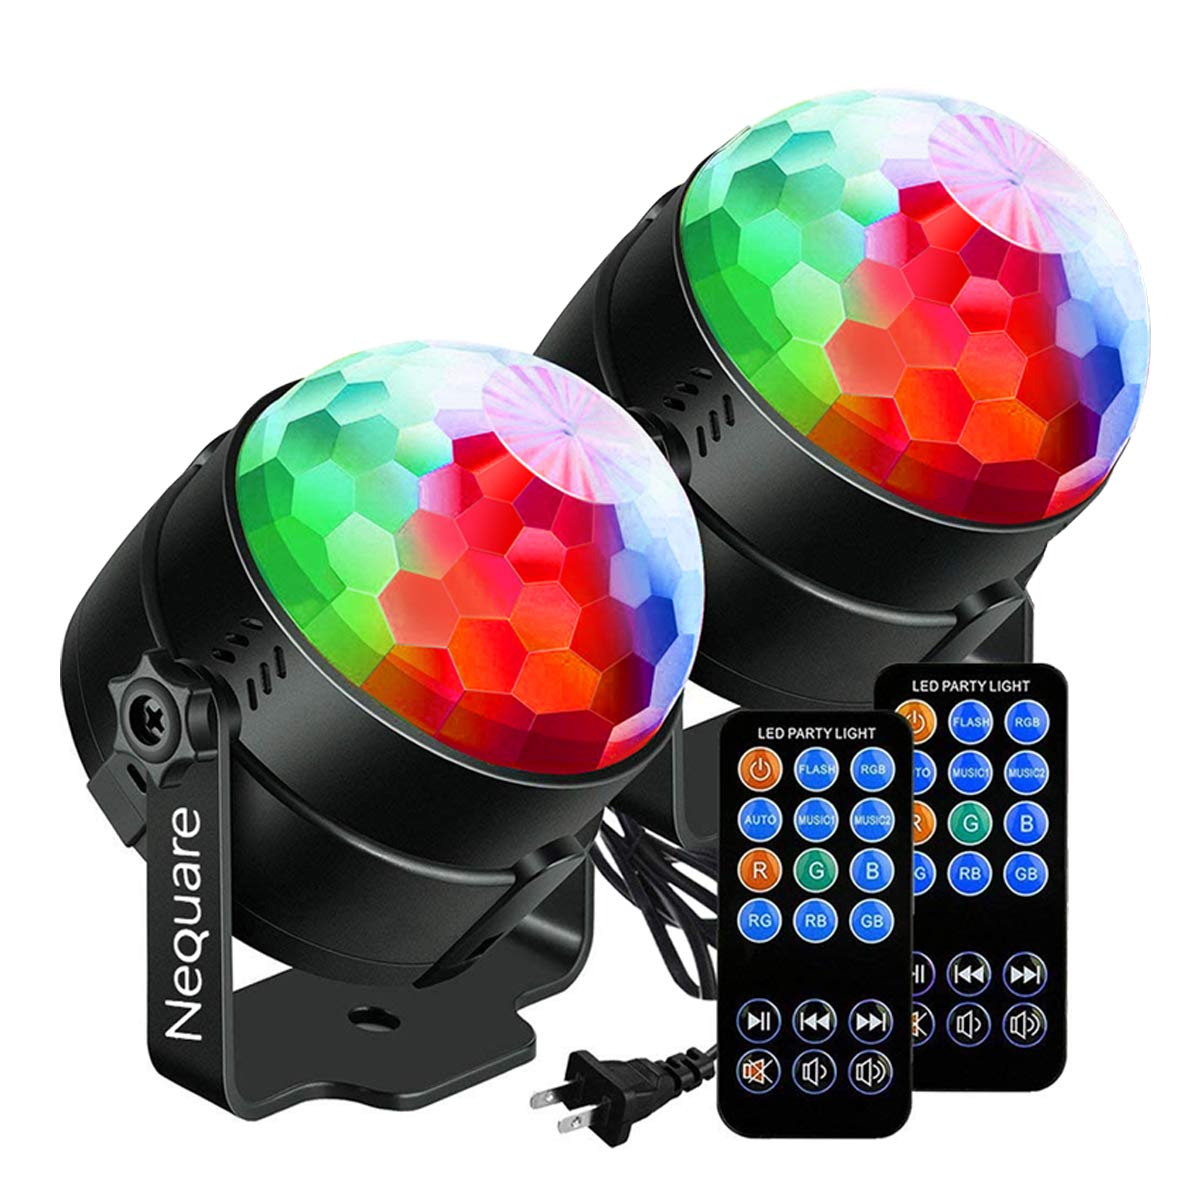 NEQUARE Party Lights Sound Activated Disco Ball Strobe Light 7 Lighting  Color Disco Lights with Remote Control for Bar Club Party DJ Karaoke Xmas